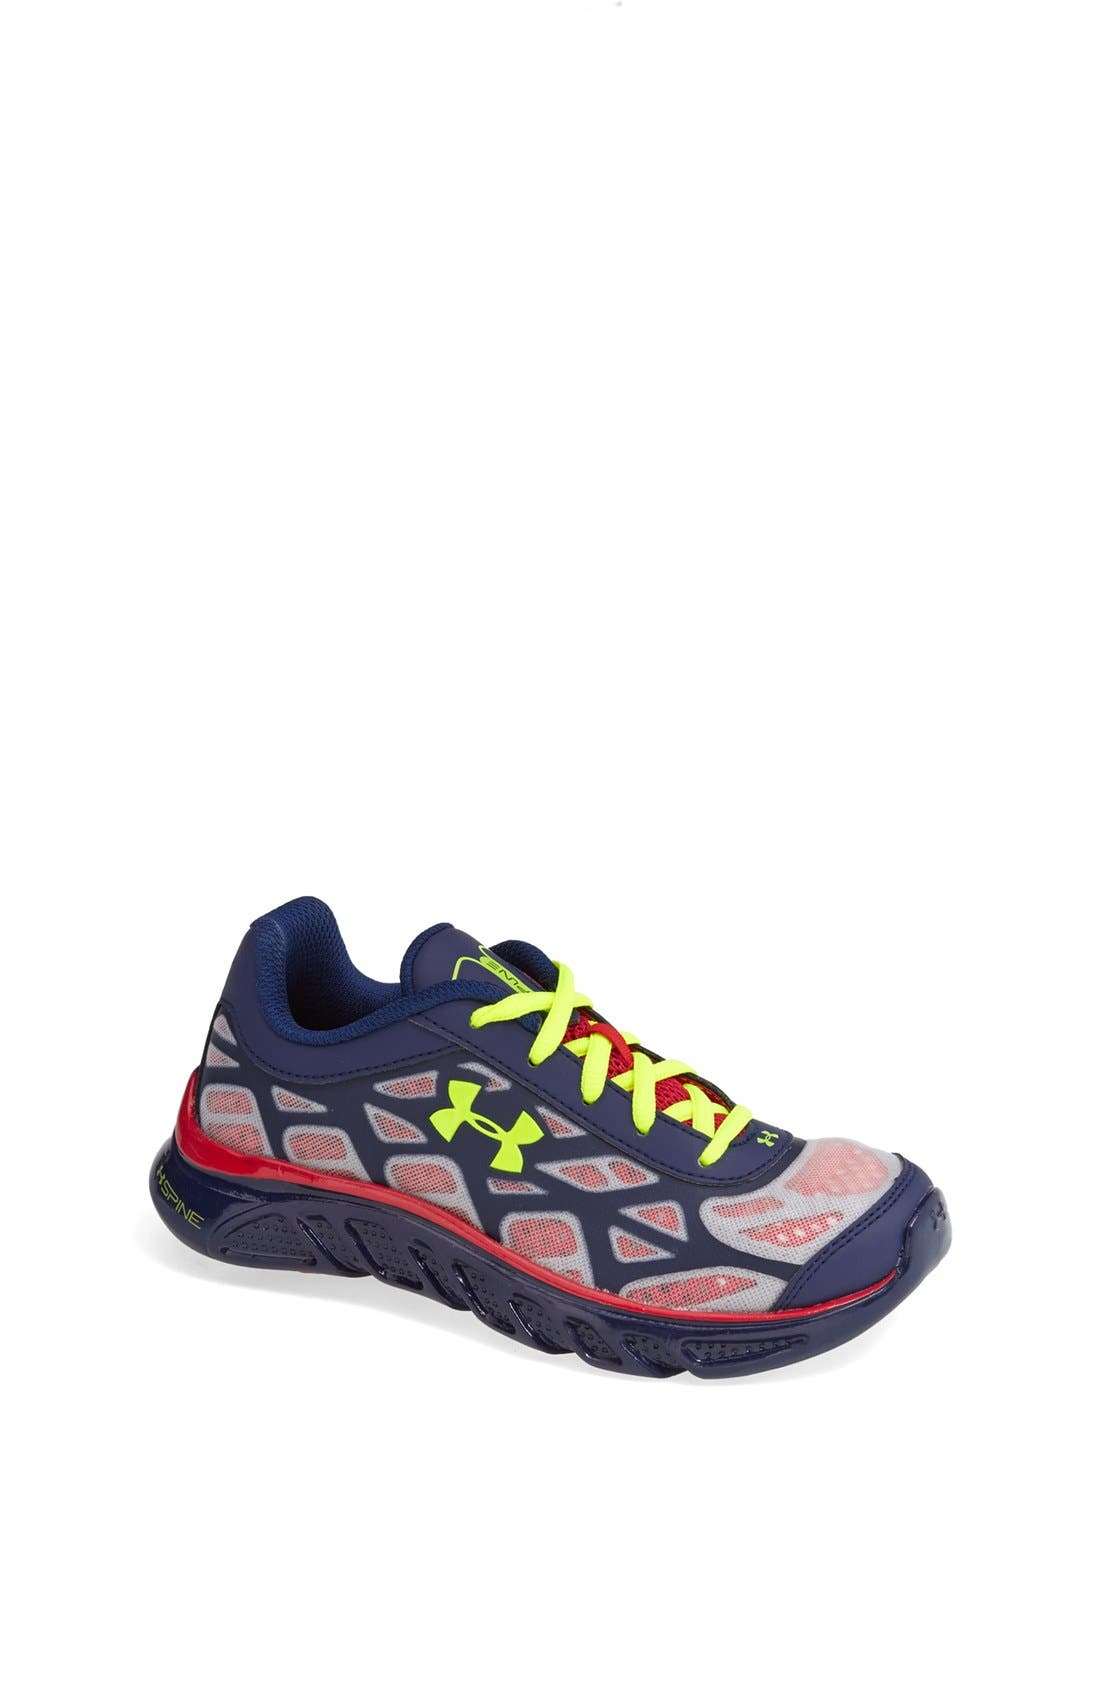 Main Image - Under Armour 'Spine™ - Vice Super Hero' Athletic Shoe (Toddler & Little Kid)